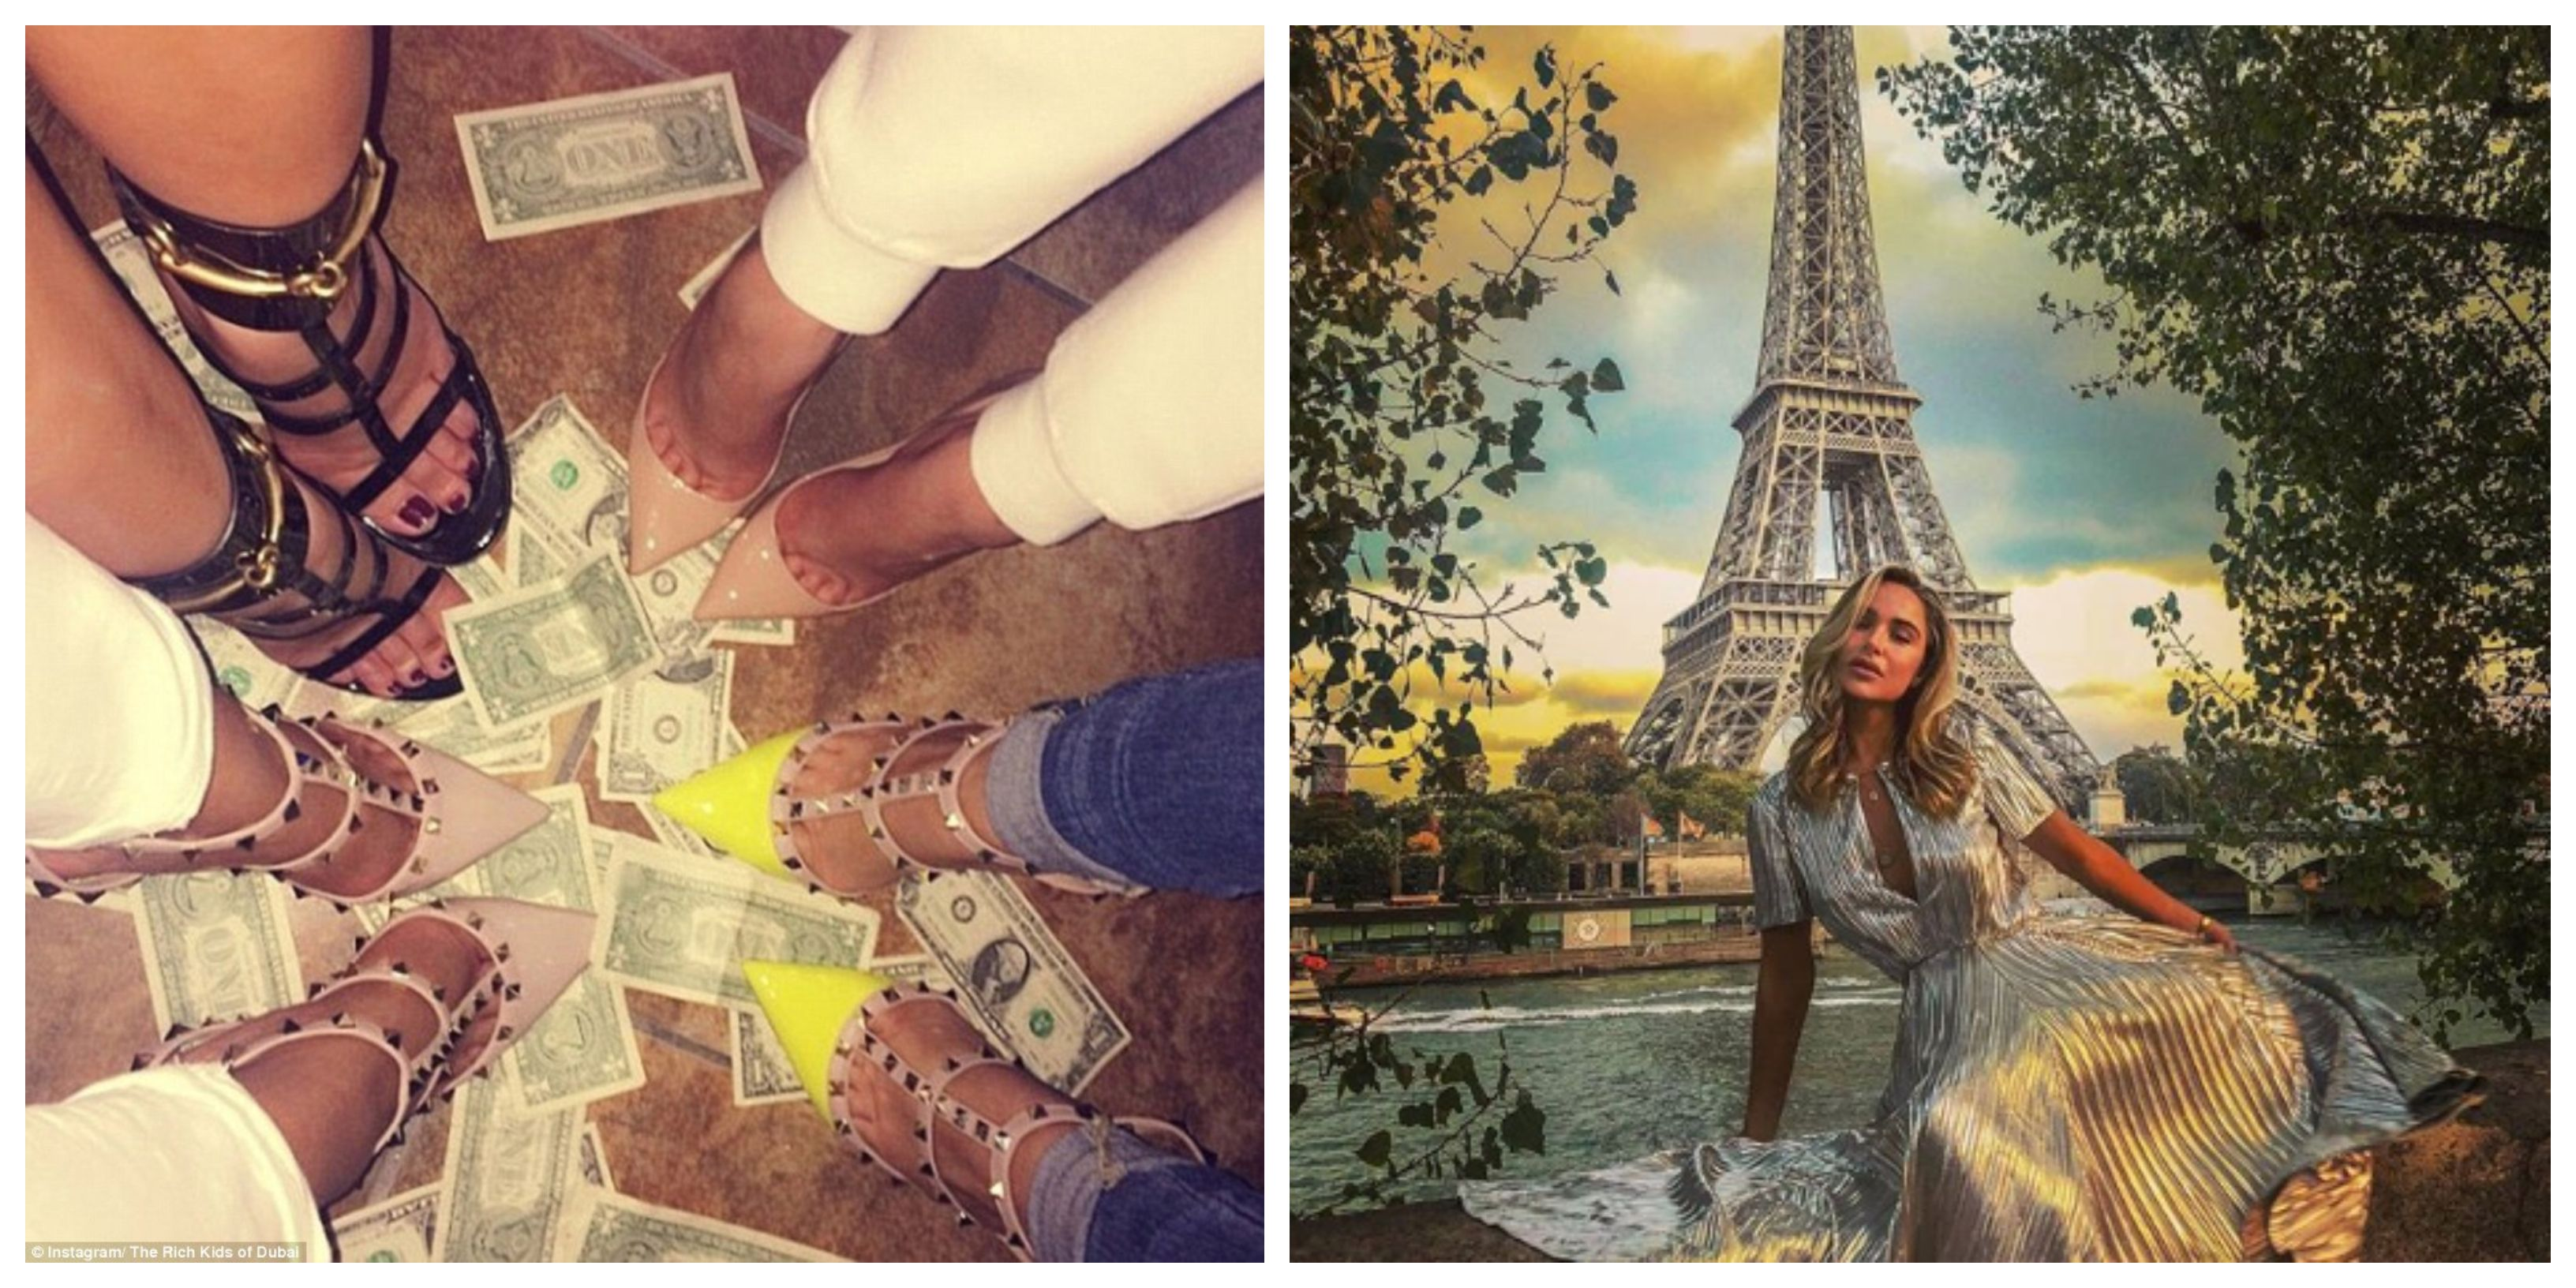 10 Countries So Rich They Are Giving Out Free Money (10 That Are